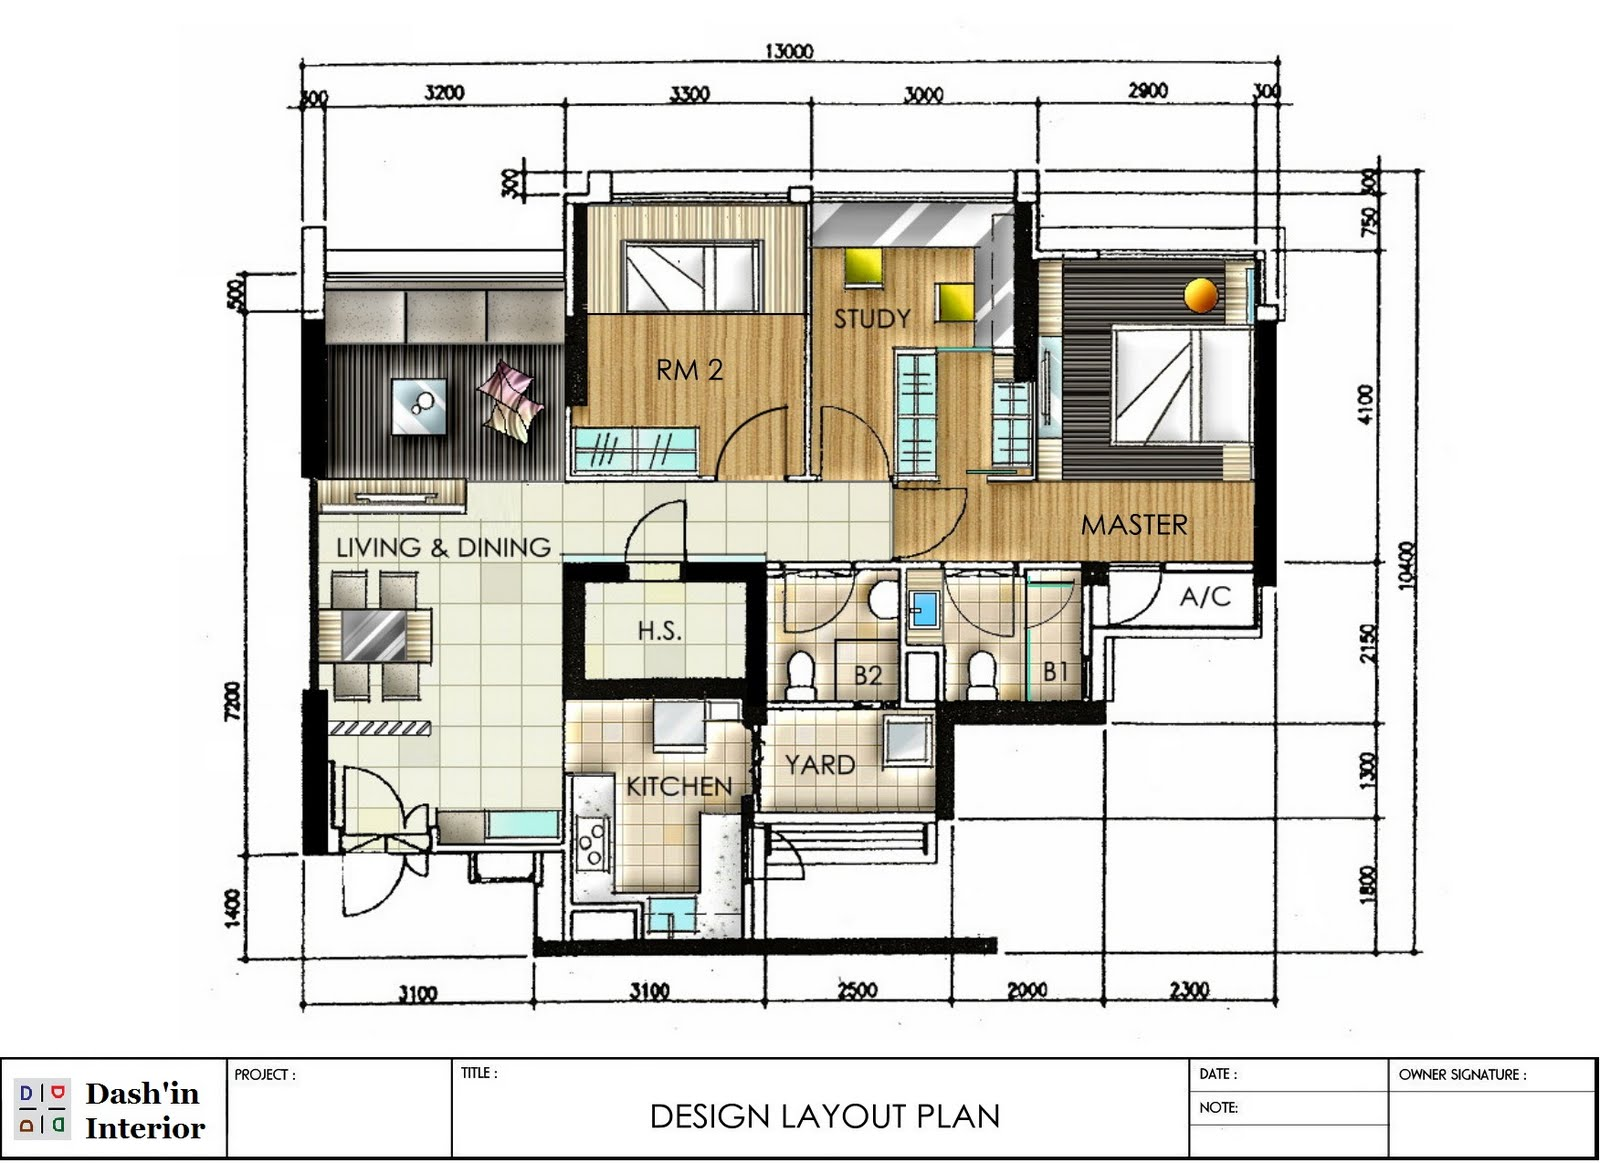 Design Layout